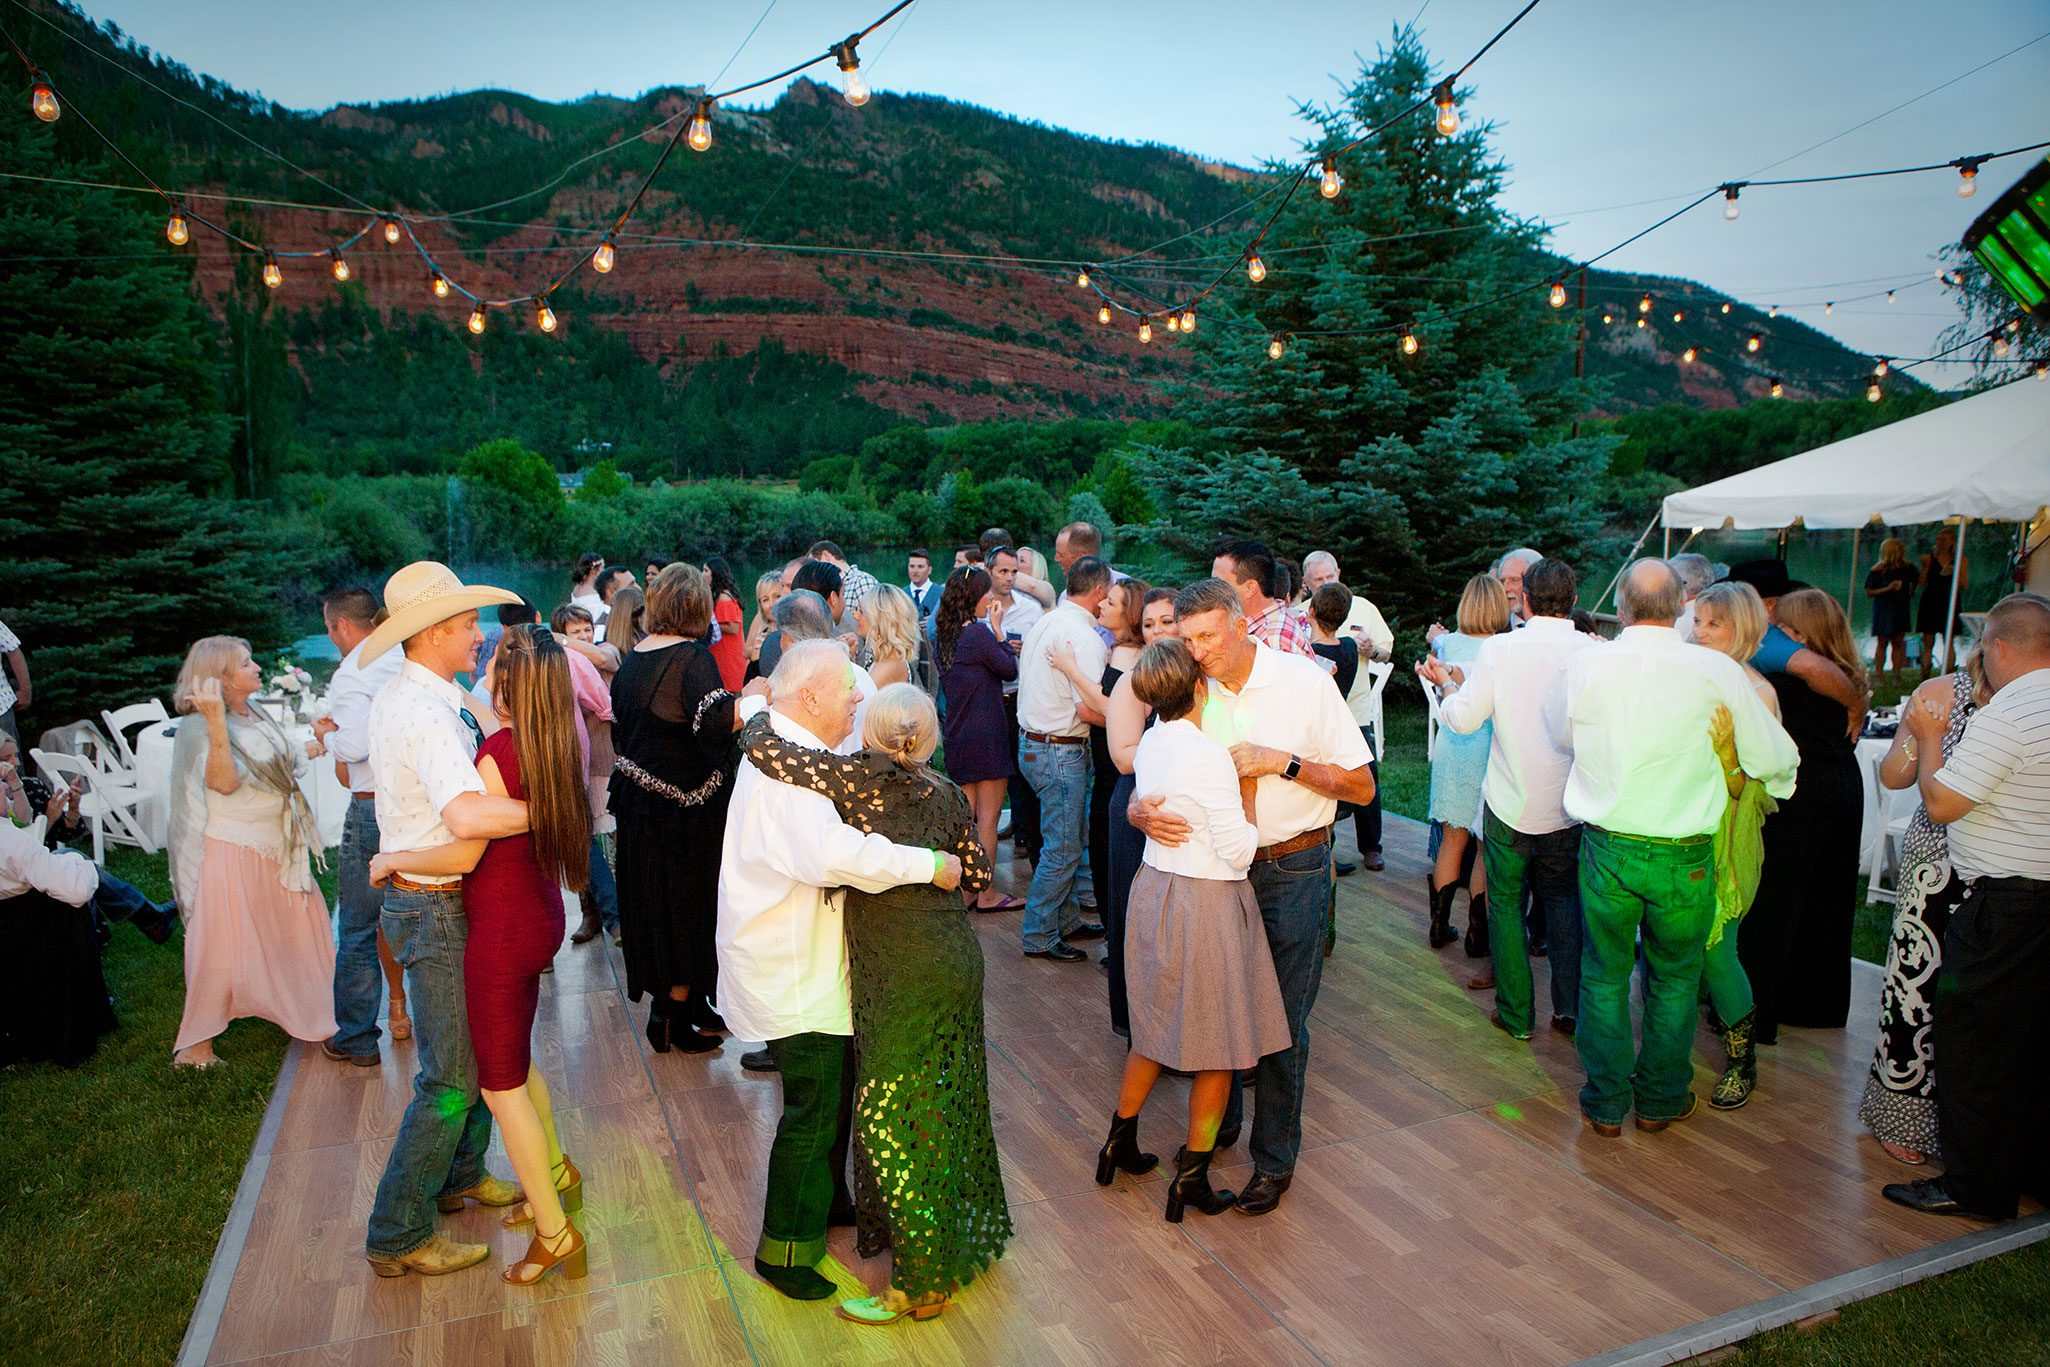 Wedding reception dancing outdoors under the stars